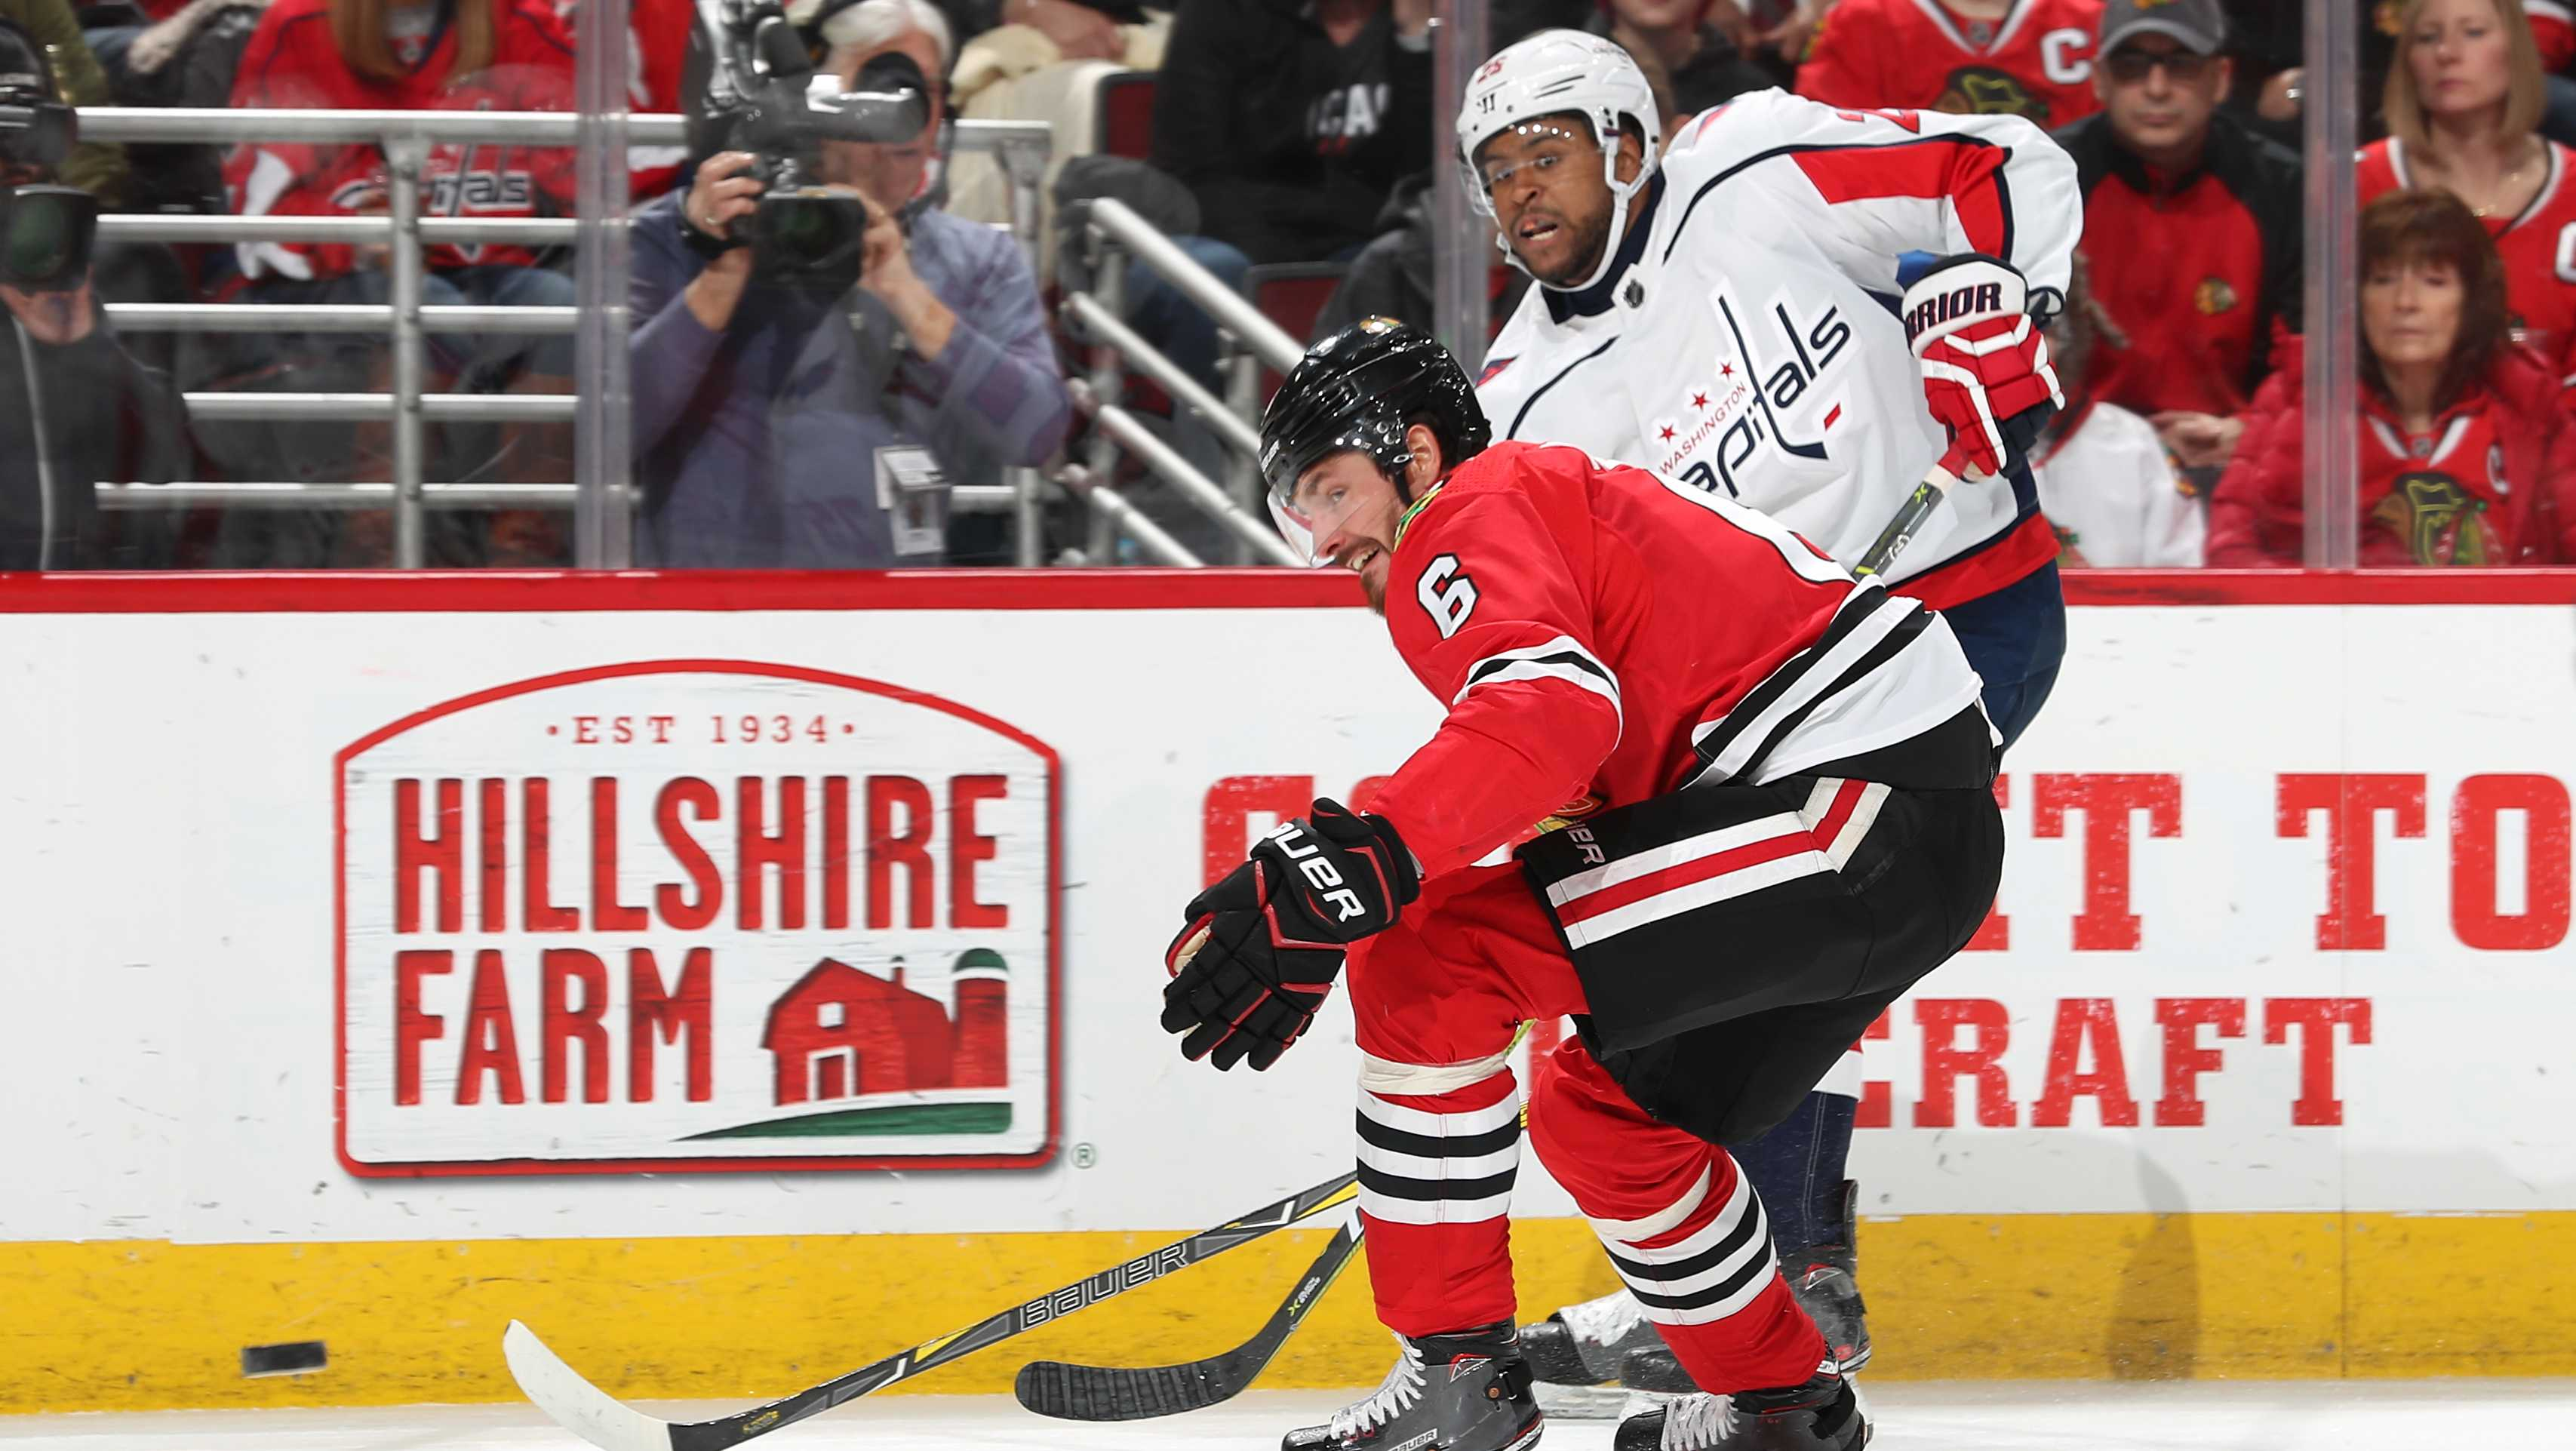 Michal Kempny #6 of the Chicago Blackhawks and Devante Smith-Pelly #25 of the Washington Capitals watch the puck in the first period at the United Center on February 17, 2018 in Chicago, Illinois.